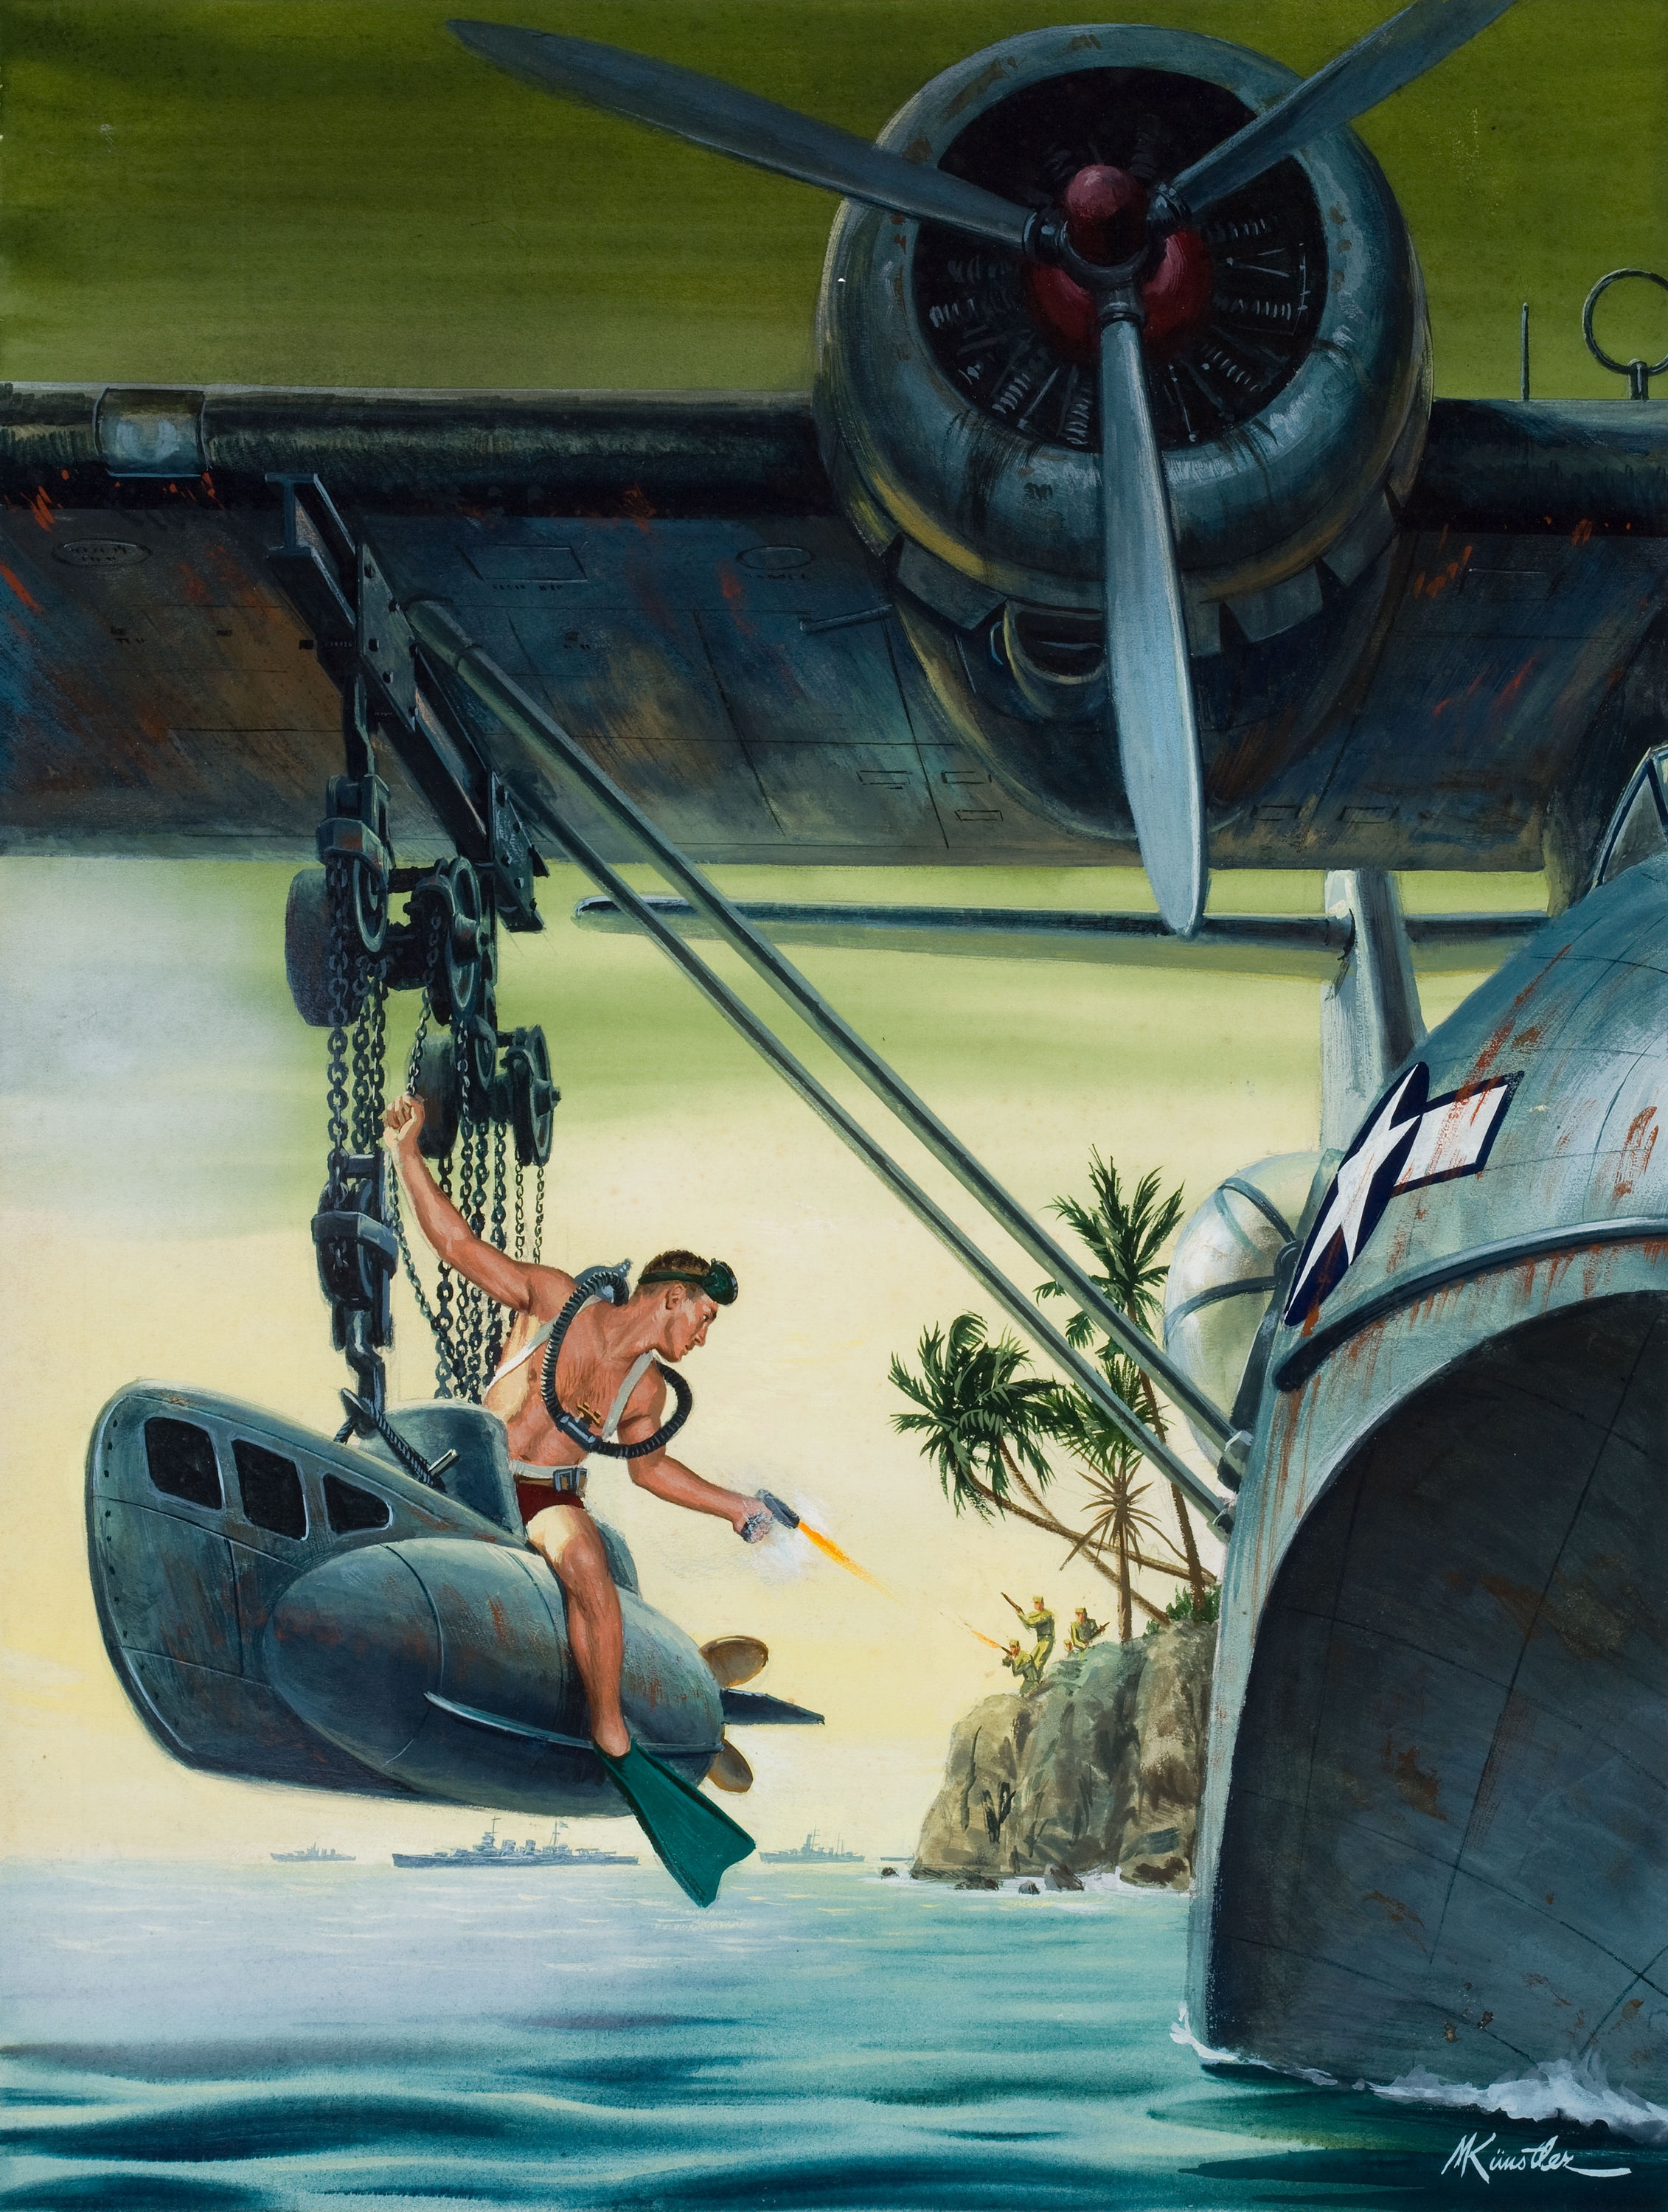 25232365-The_Hell-Raising_Yank_and_His_Remarkable_Flying_Sub,_Male_cover_illustration